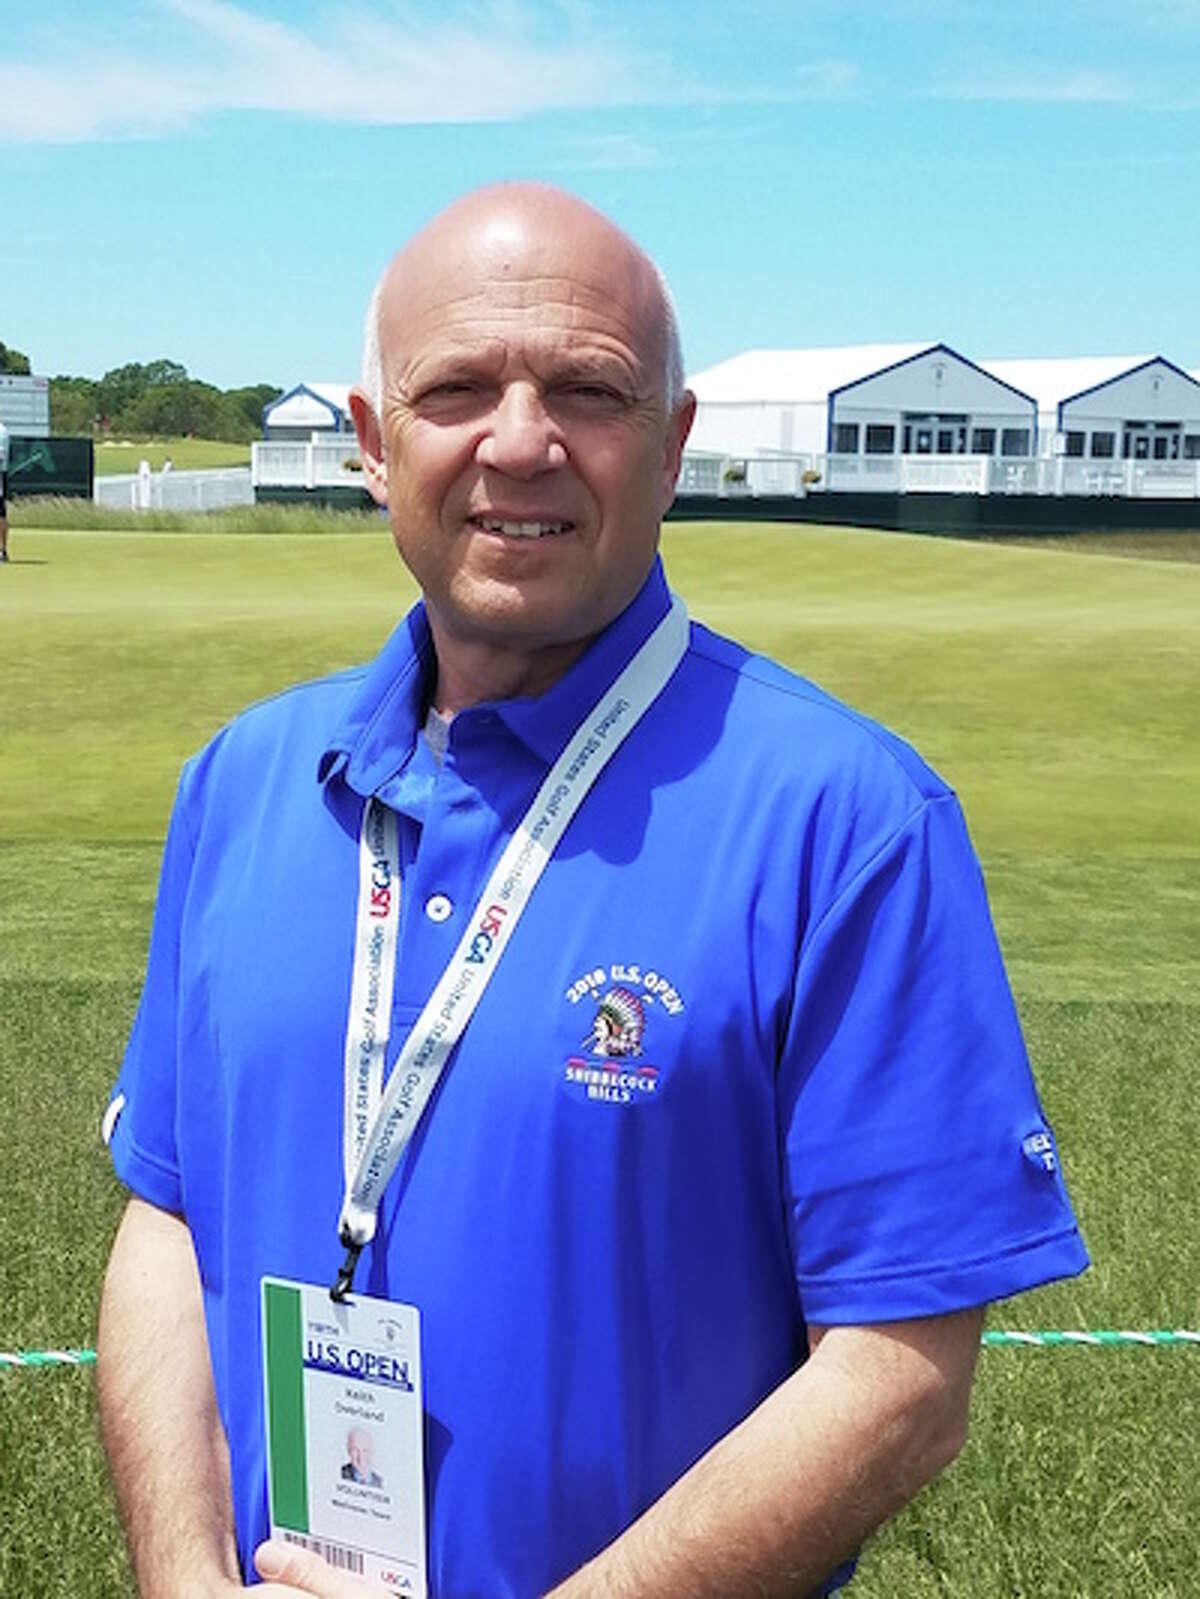 Dr. Keith Overland spent two days at the Shinnecock Hills golf course offering chiropractic services to players during the U.S. Open. - Contributed photo